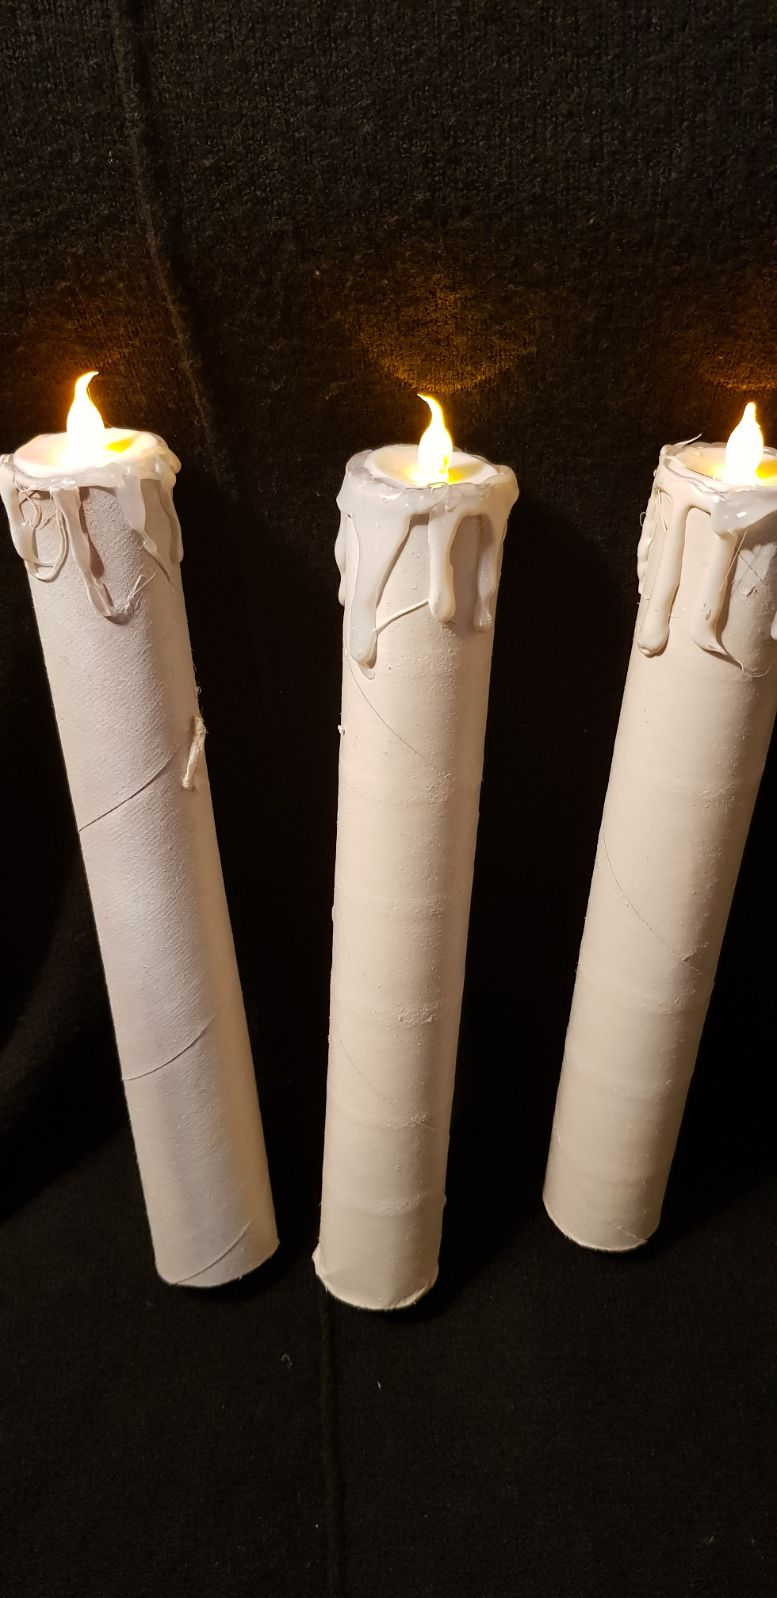 Handmade floating candles